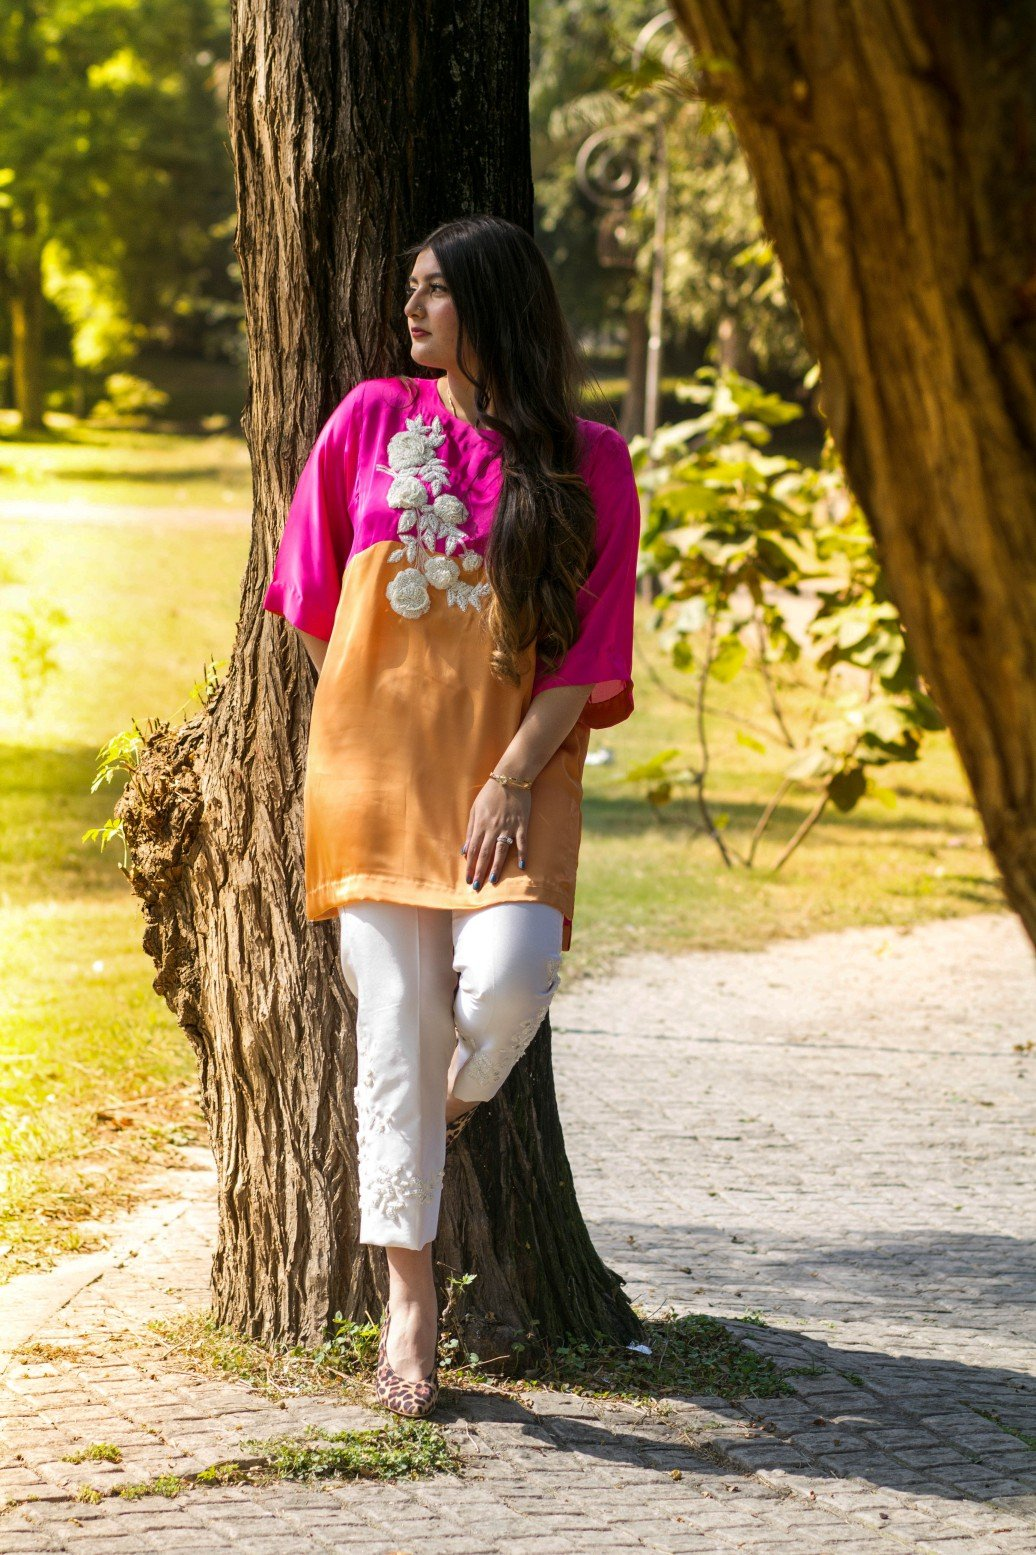 Dilaawaiz by Sahar - Pink and Orange - ENS-010